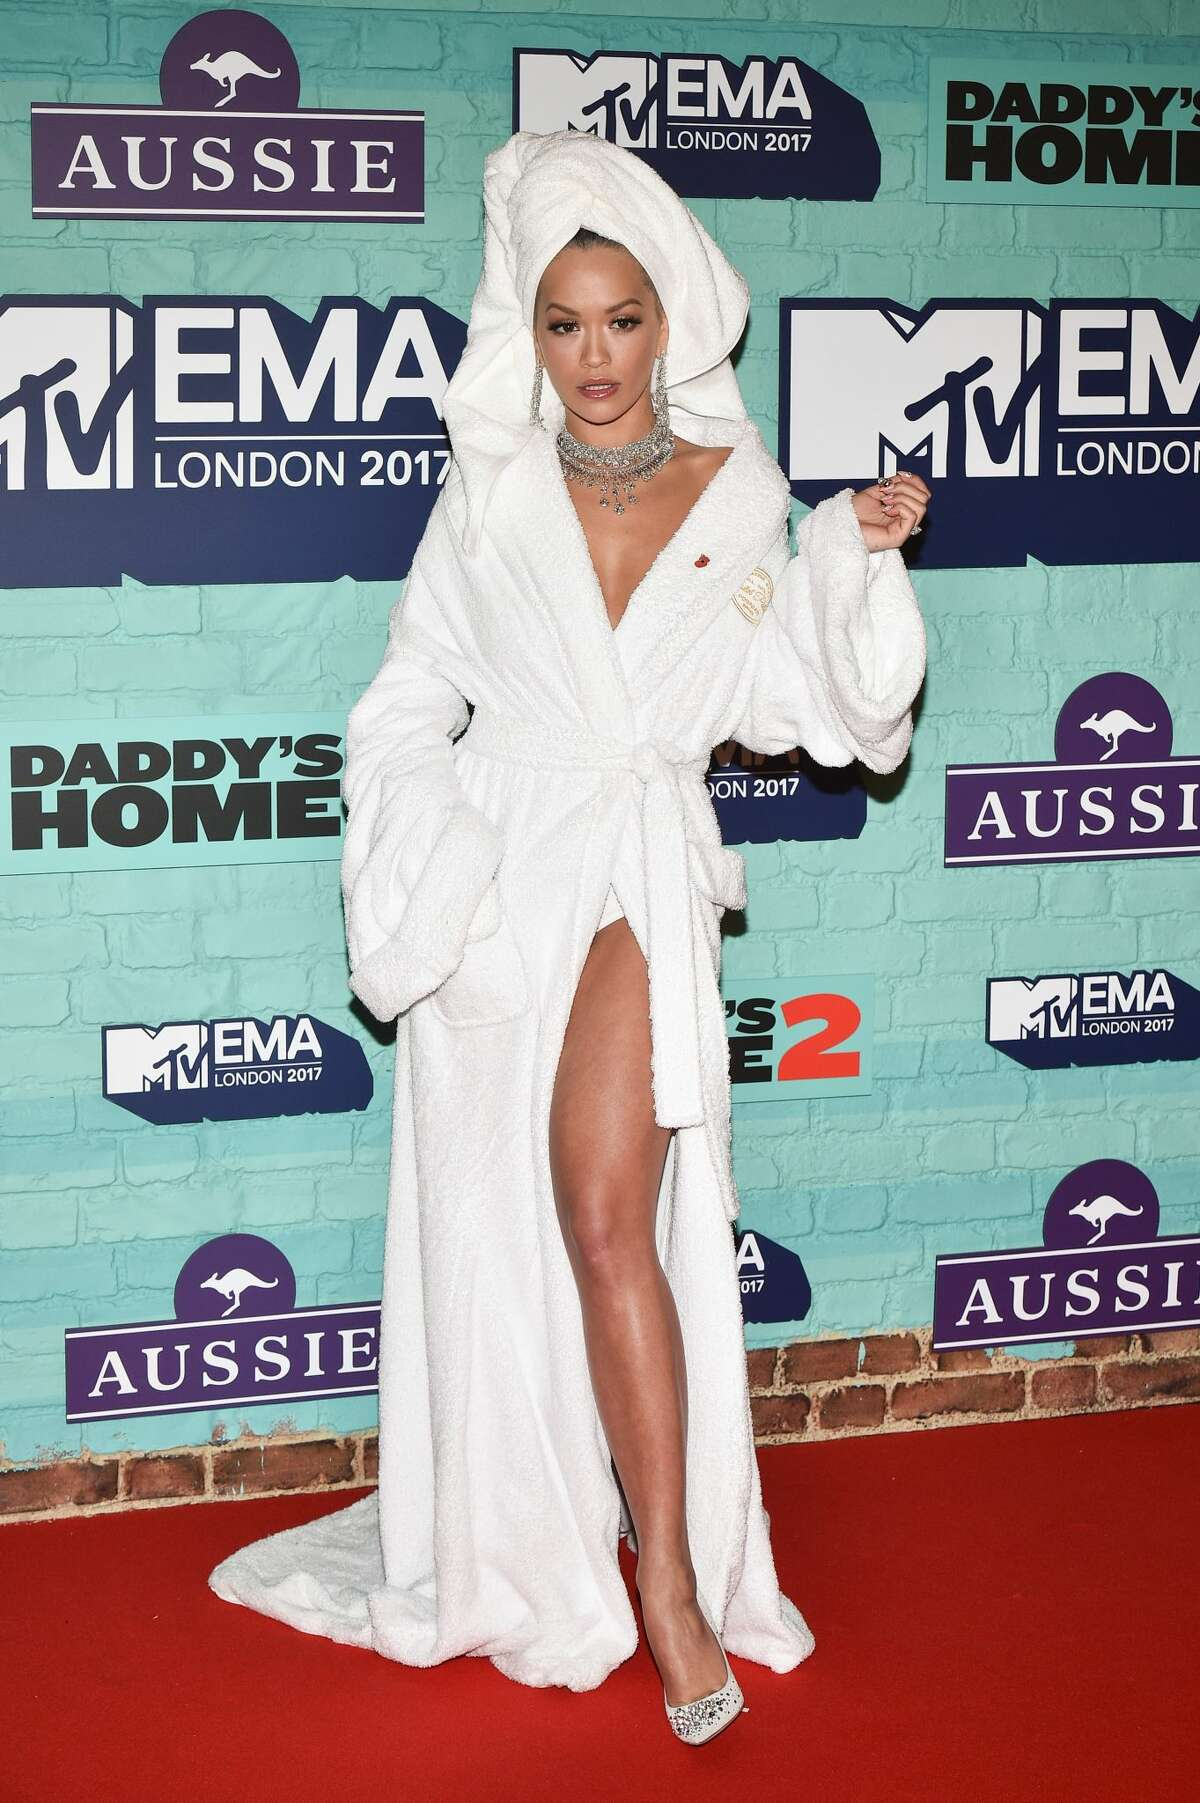 Undecided:Bravo for Rita Ora showing up at the red carpet in a robe and towel, but come on.